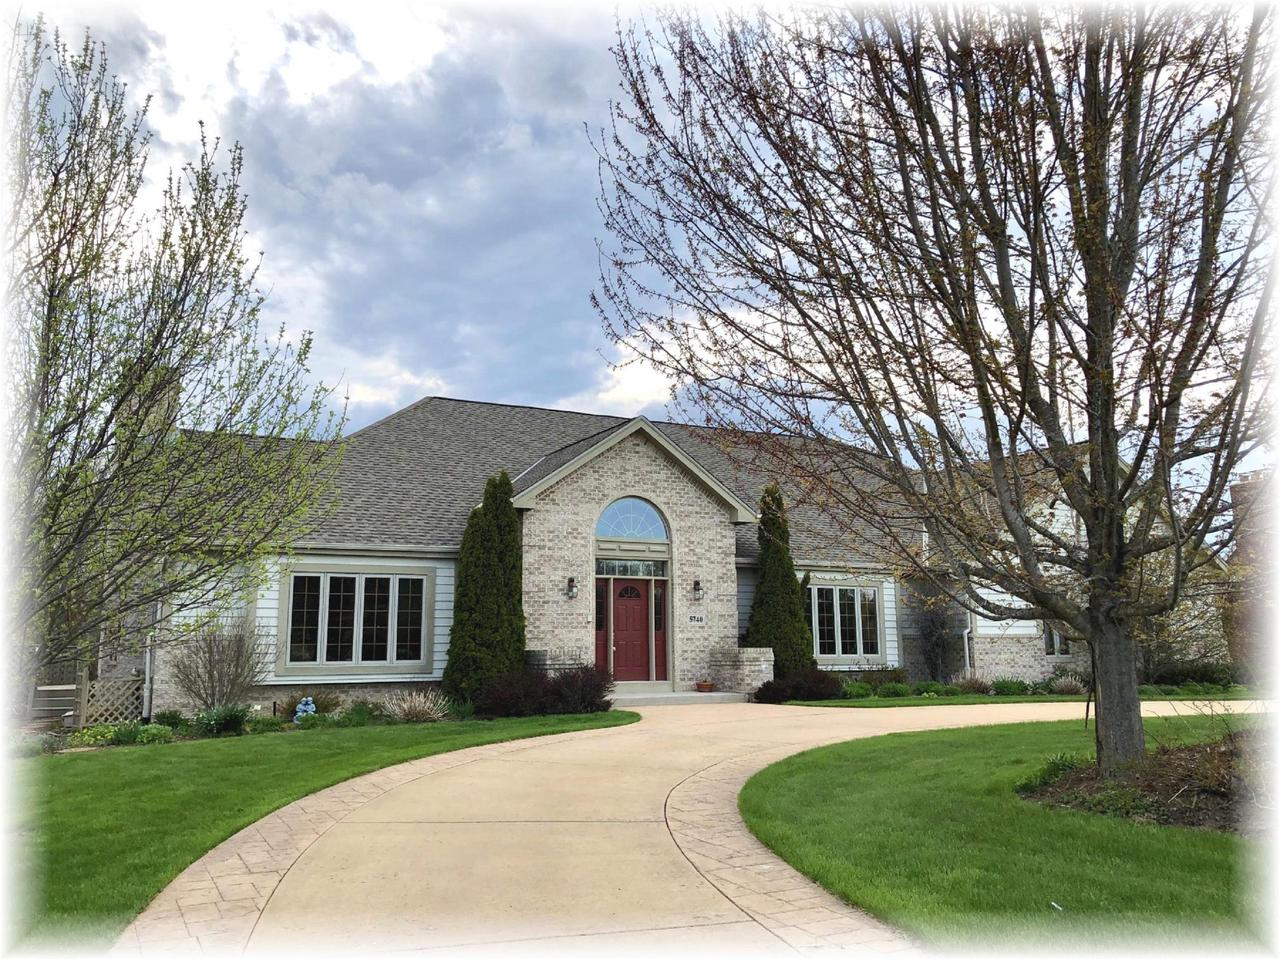 5740 Woodland Hills Dr DRIVE, MOUNT PLEASANT, WI 53406